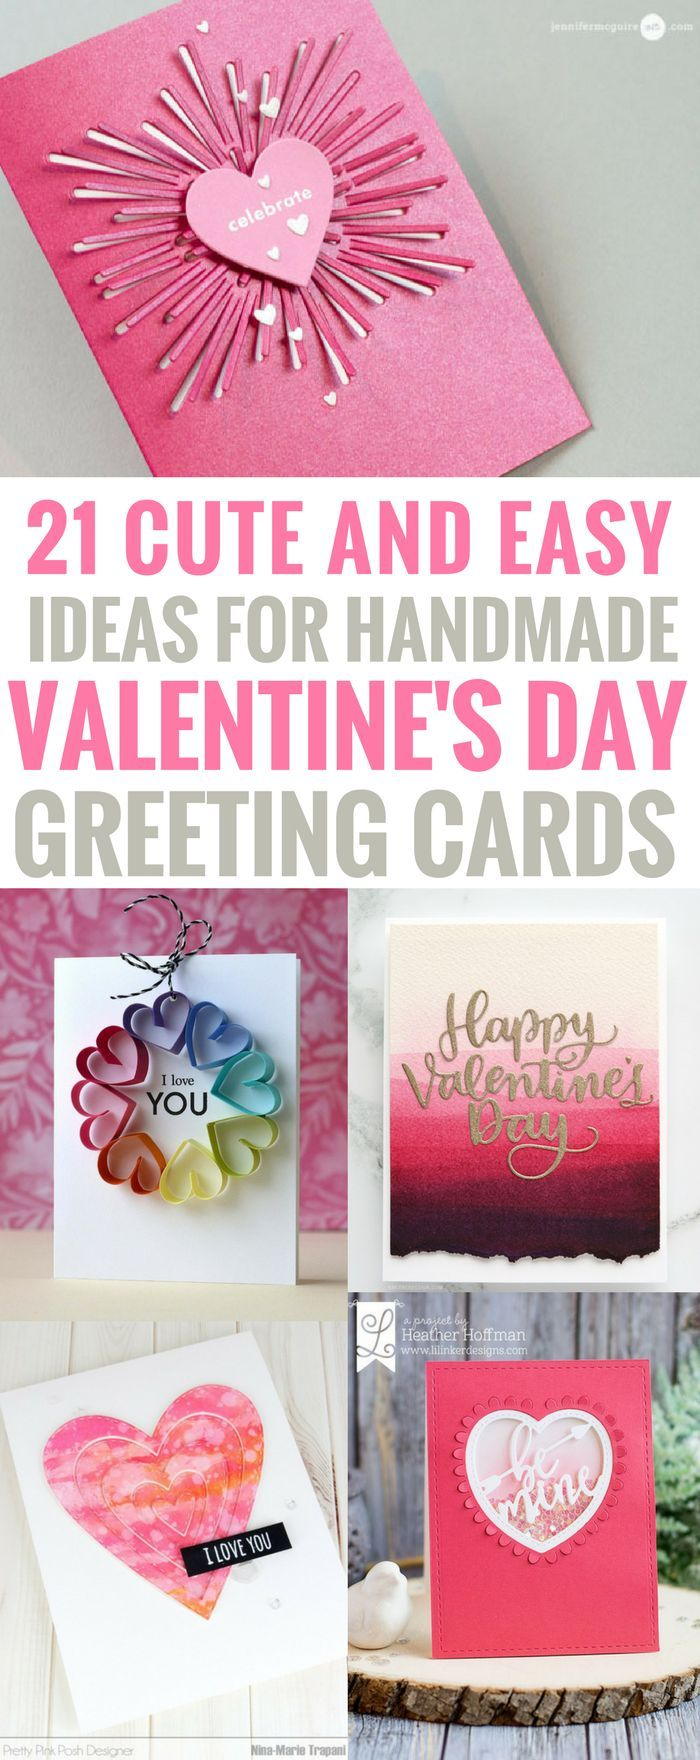 #Valentinesday #papercrafts #greetingcard DIY Valentines Day Cards - Easy Handmade Cards for Him and Her, Boyfriend, Husband Kids, Friends and Teens - Funny, Romantic, Printable Ideas for Making A Unique Homemade Valentine Card - Step by Step Tutorials and Instructions for Making Cute Valentine's Day Greeting Cards